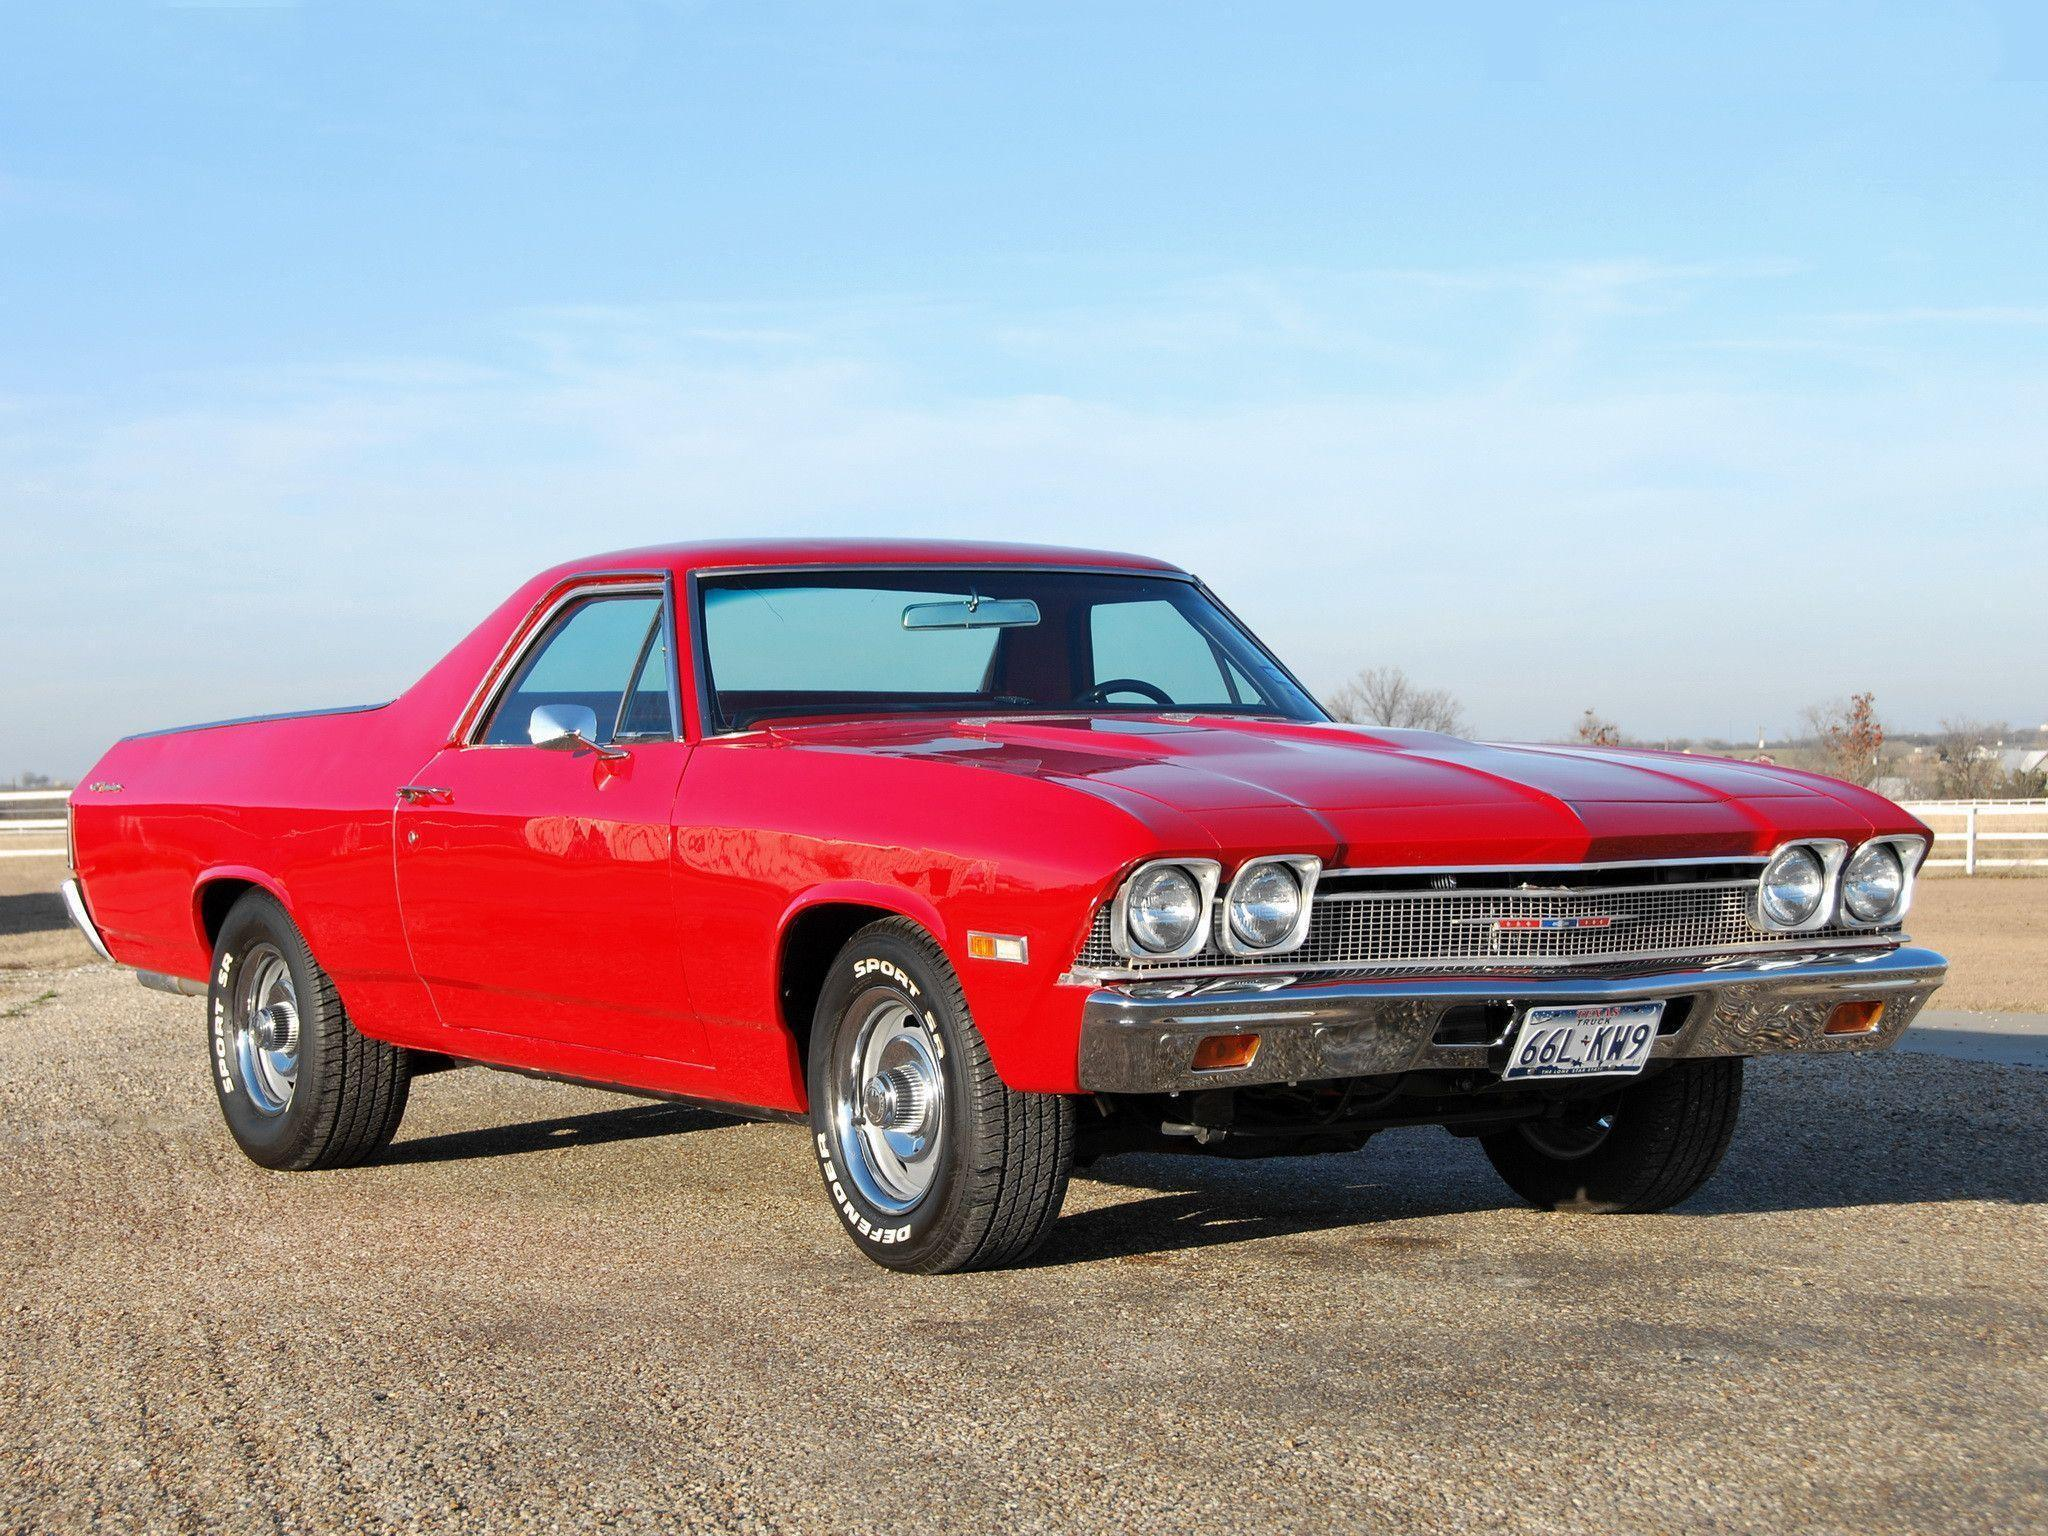 HD 1968 Chevy El Camino Wallpaper | Download Free - 127143